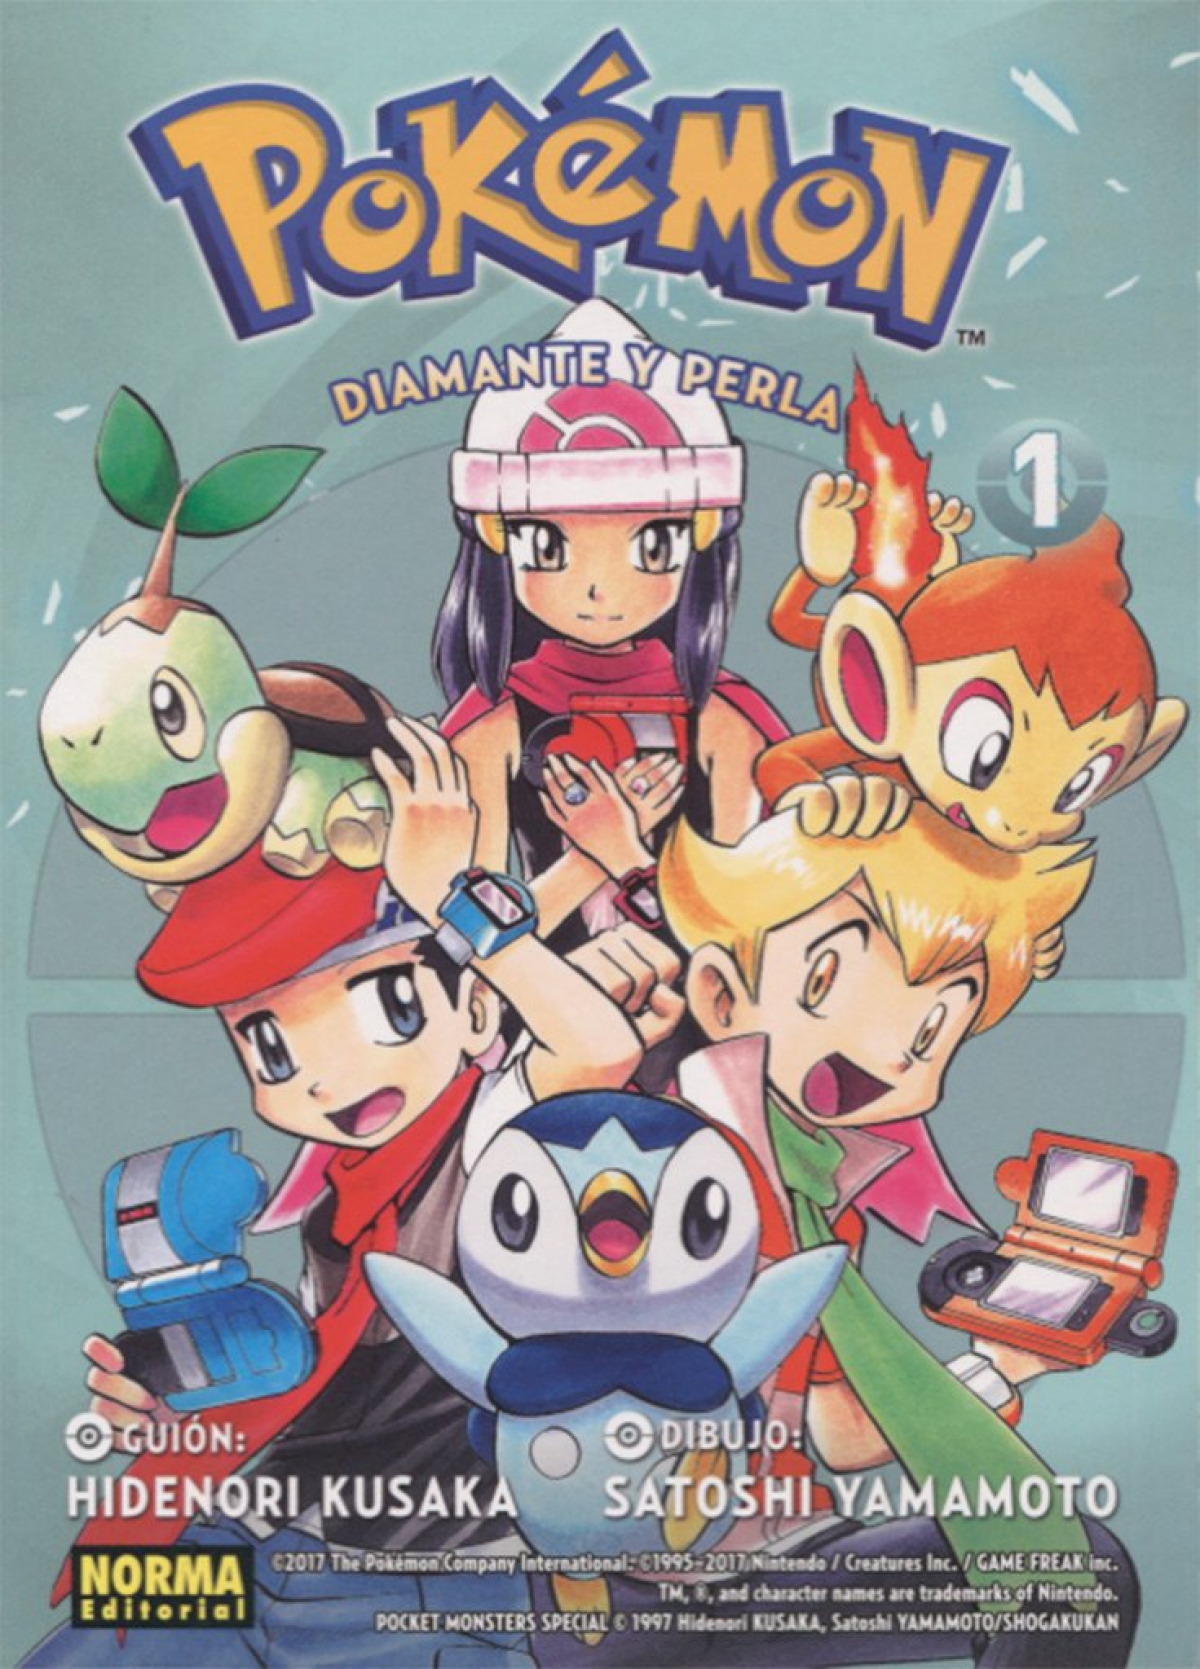 POKEMON 17 DIAMANTE Y PERLA 1